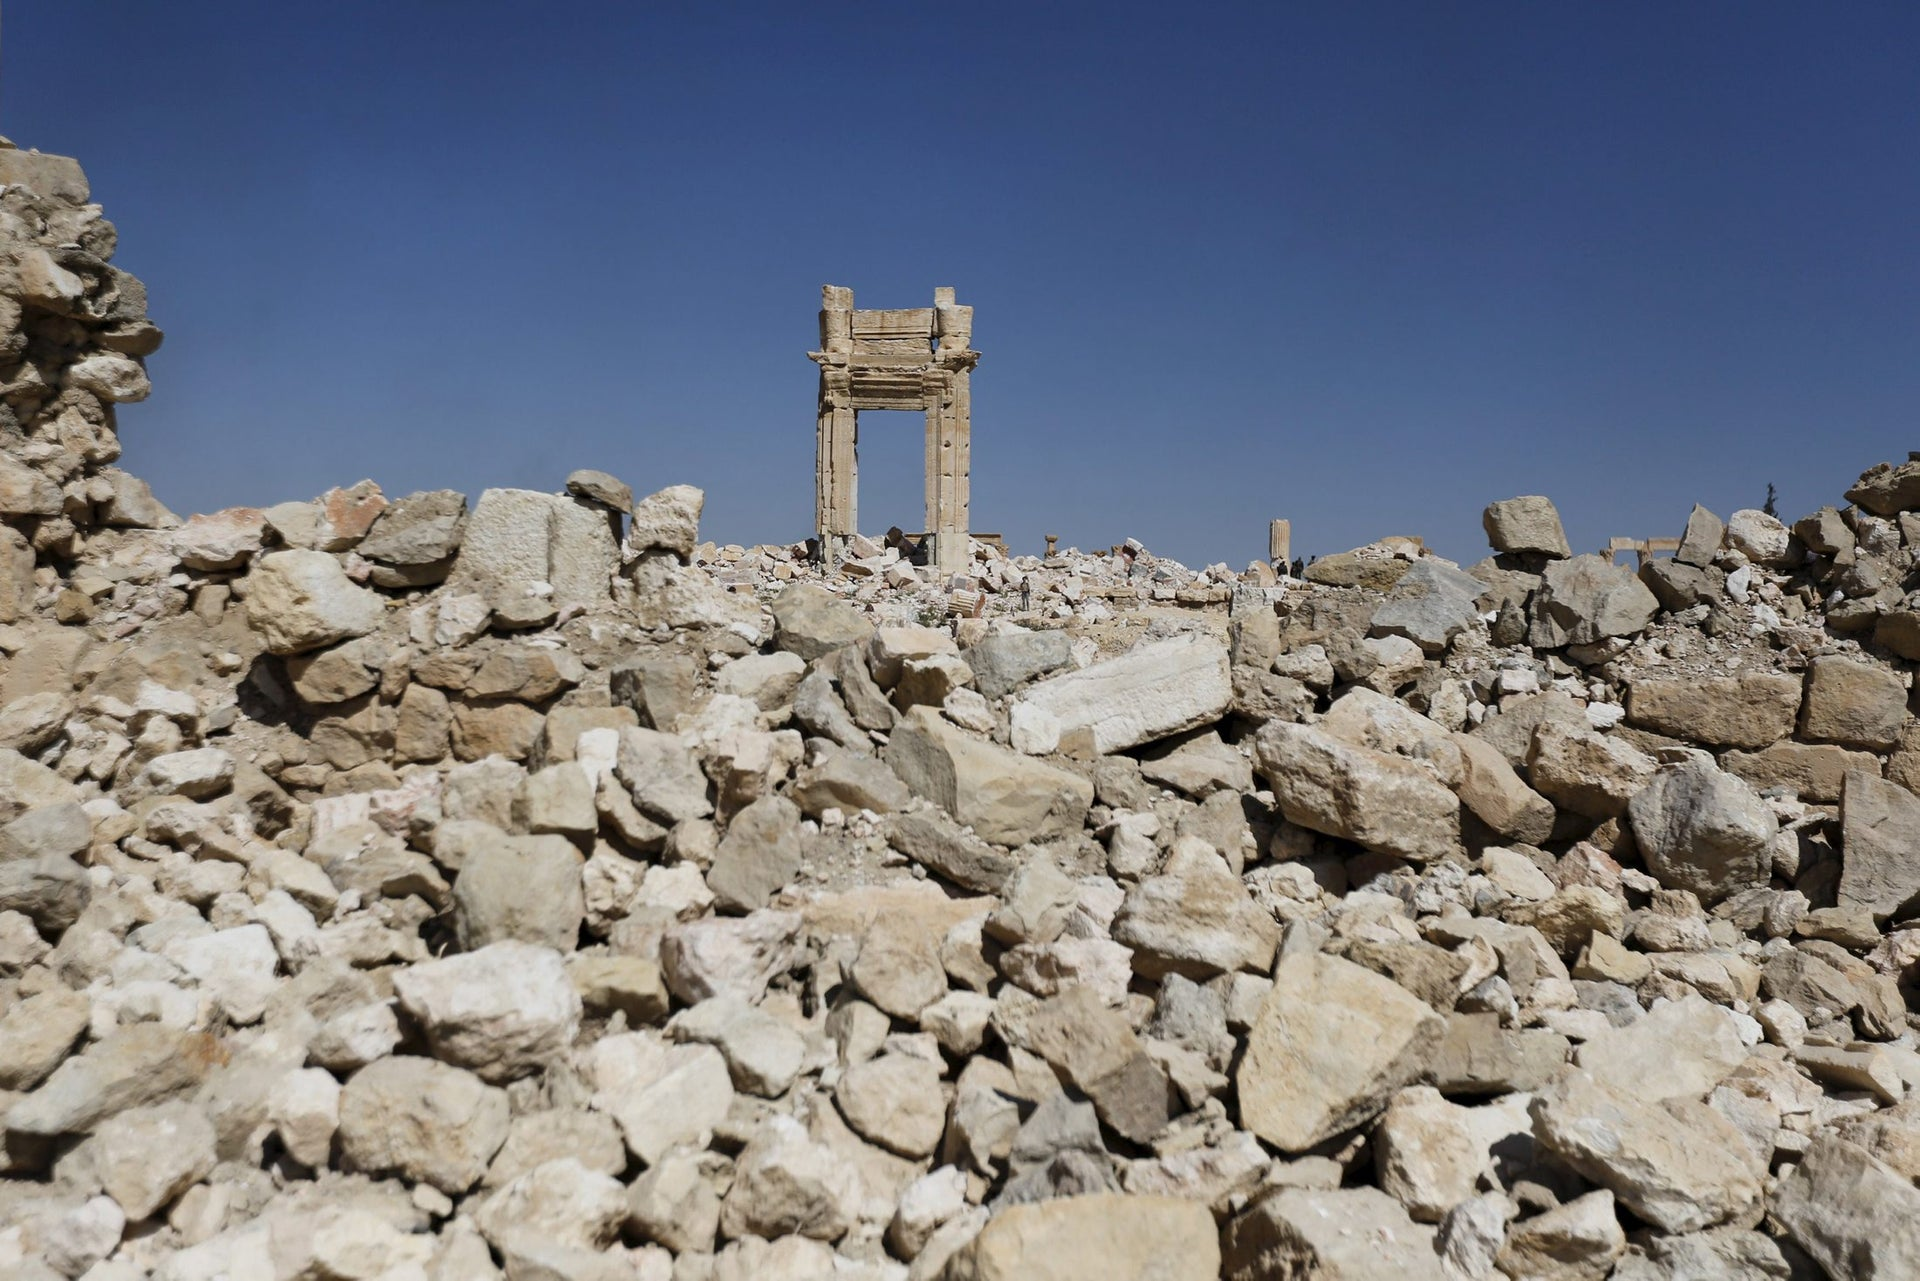 The remains of the Temple of Bel in Palmyra, Homs, Syria, April 1, 2016.